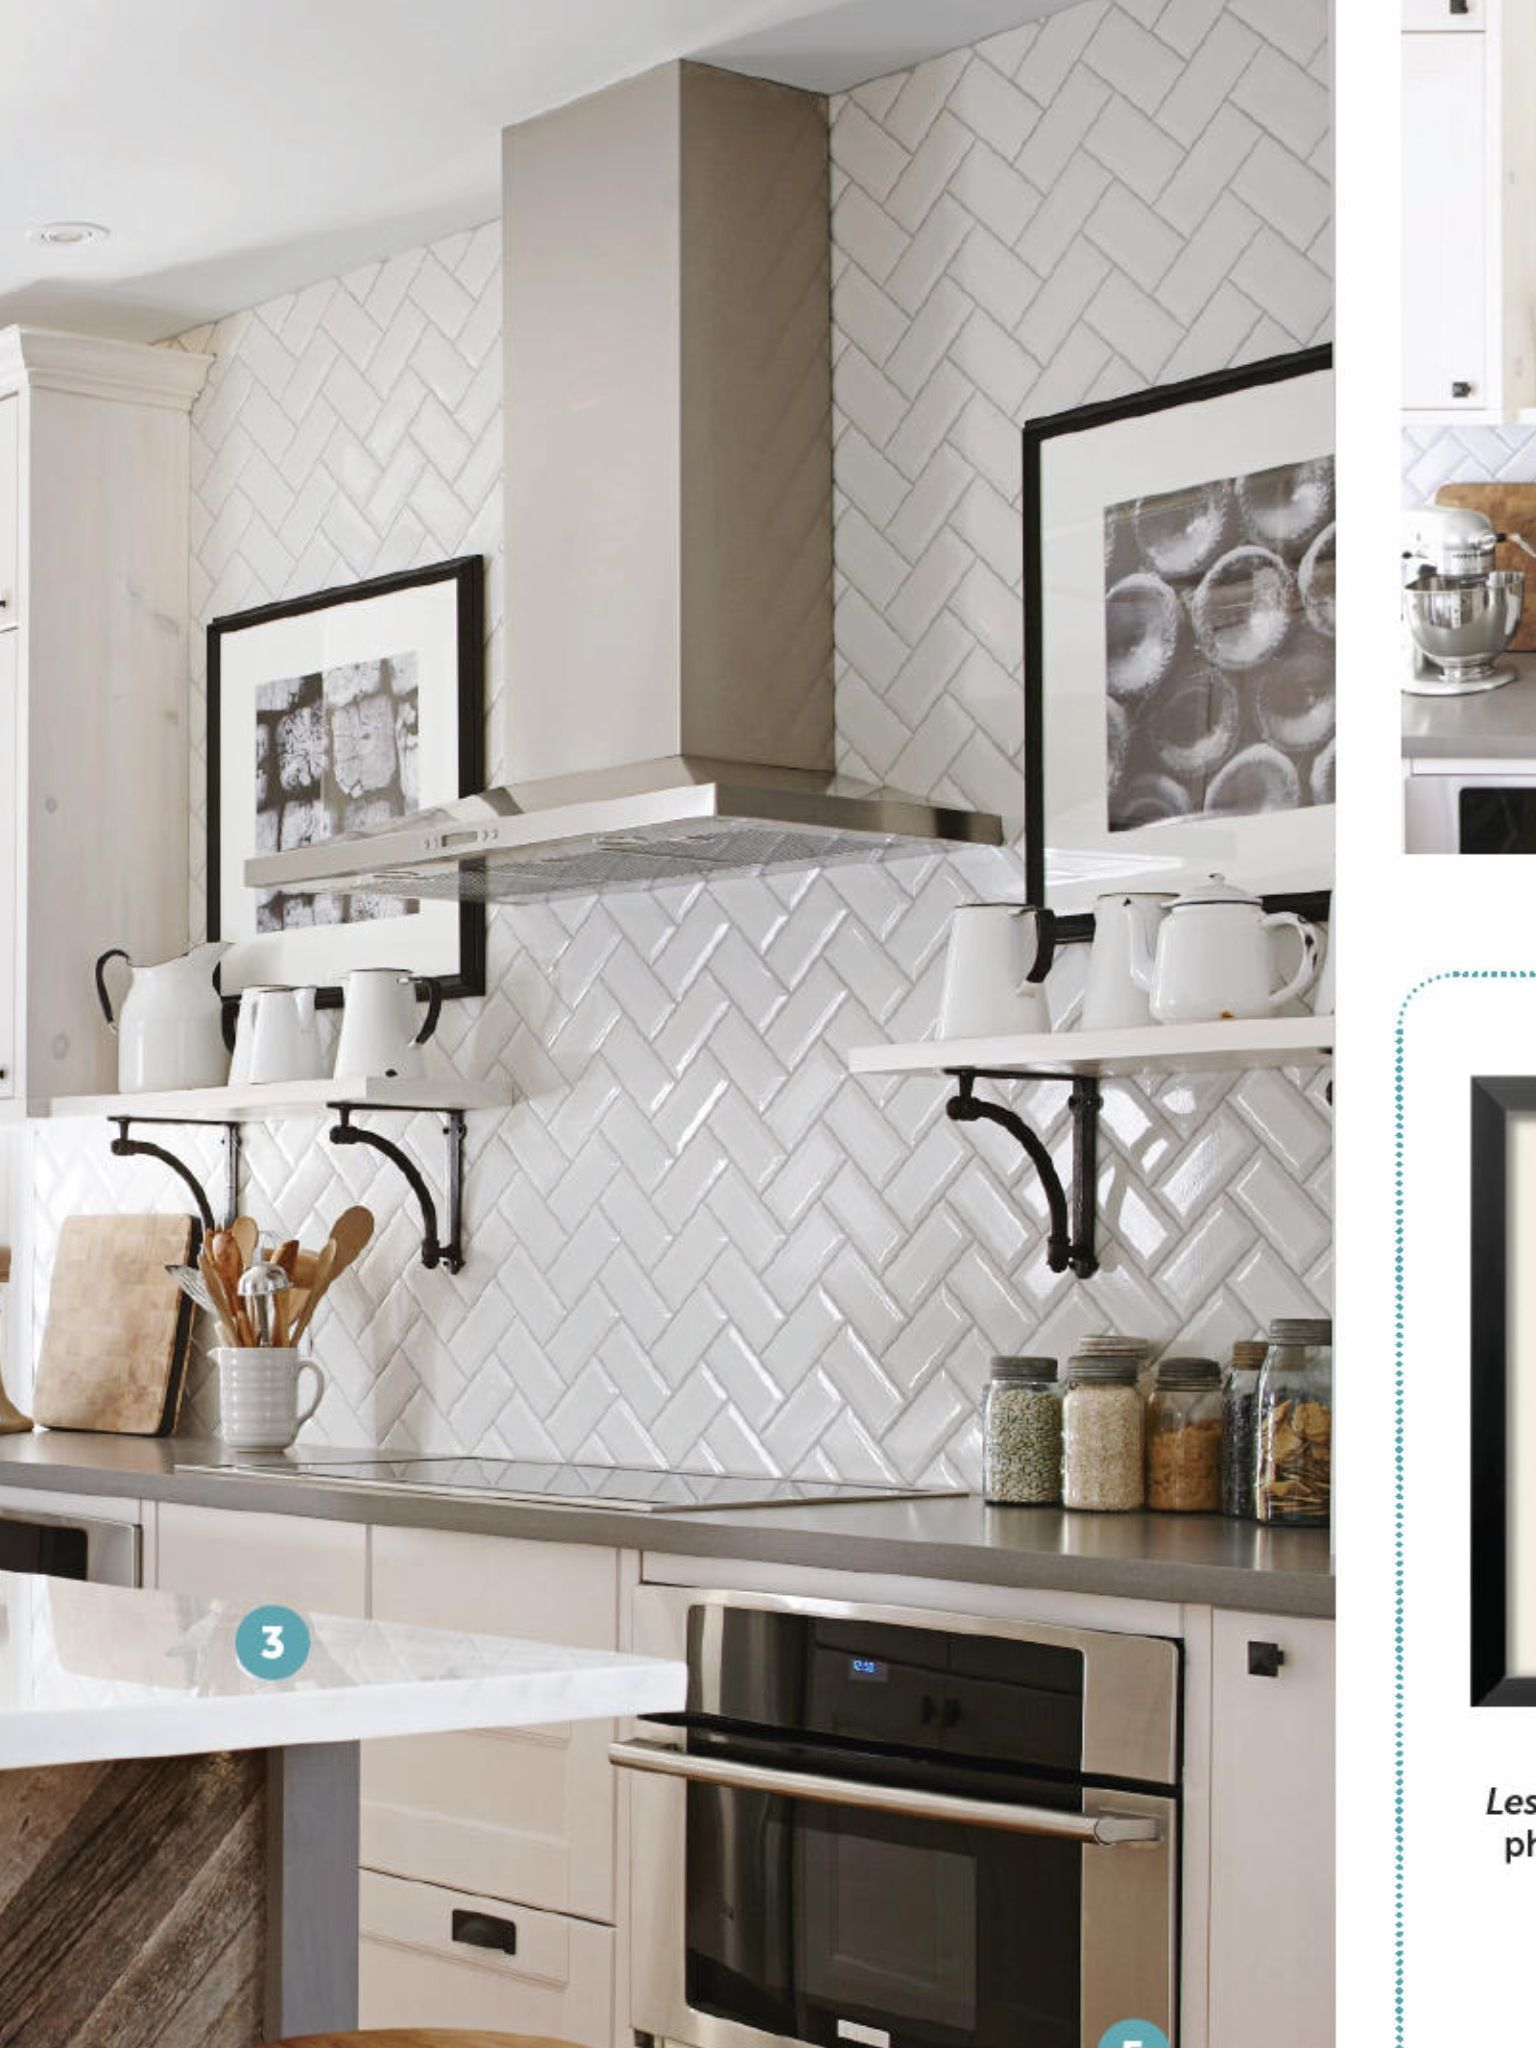 Kitchen Tiled Walls Top 10 Remodeling Shows Shower Walls Patterns And Chevron Patterns